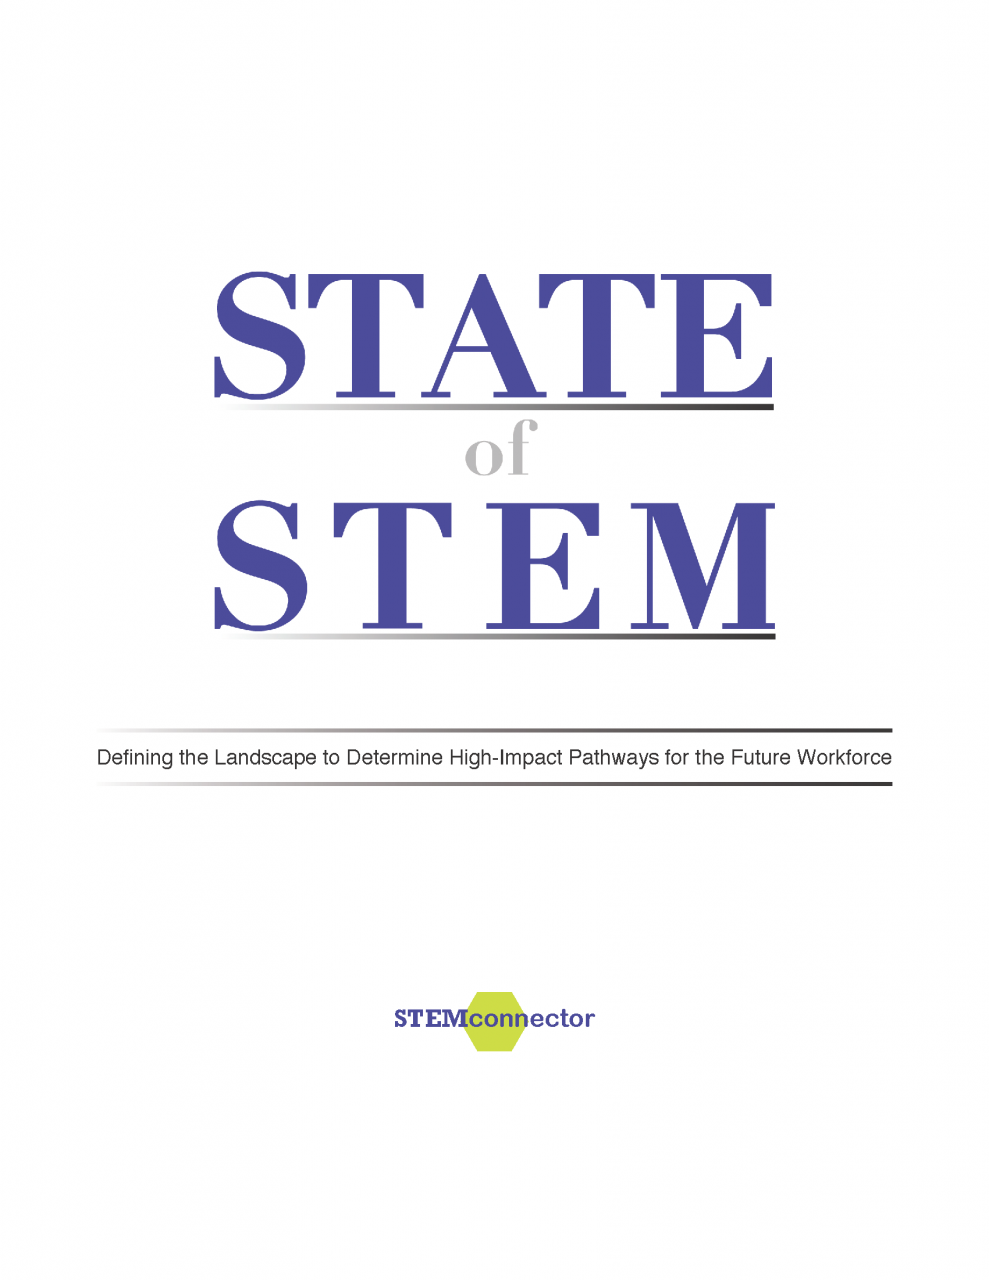 STEMconnector Releases Long-Anticipated State of STEM Report, Examines Underlying Causes of STEM Talent Gap and Provides a Path Forward